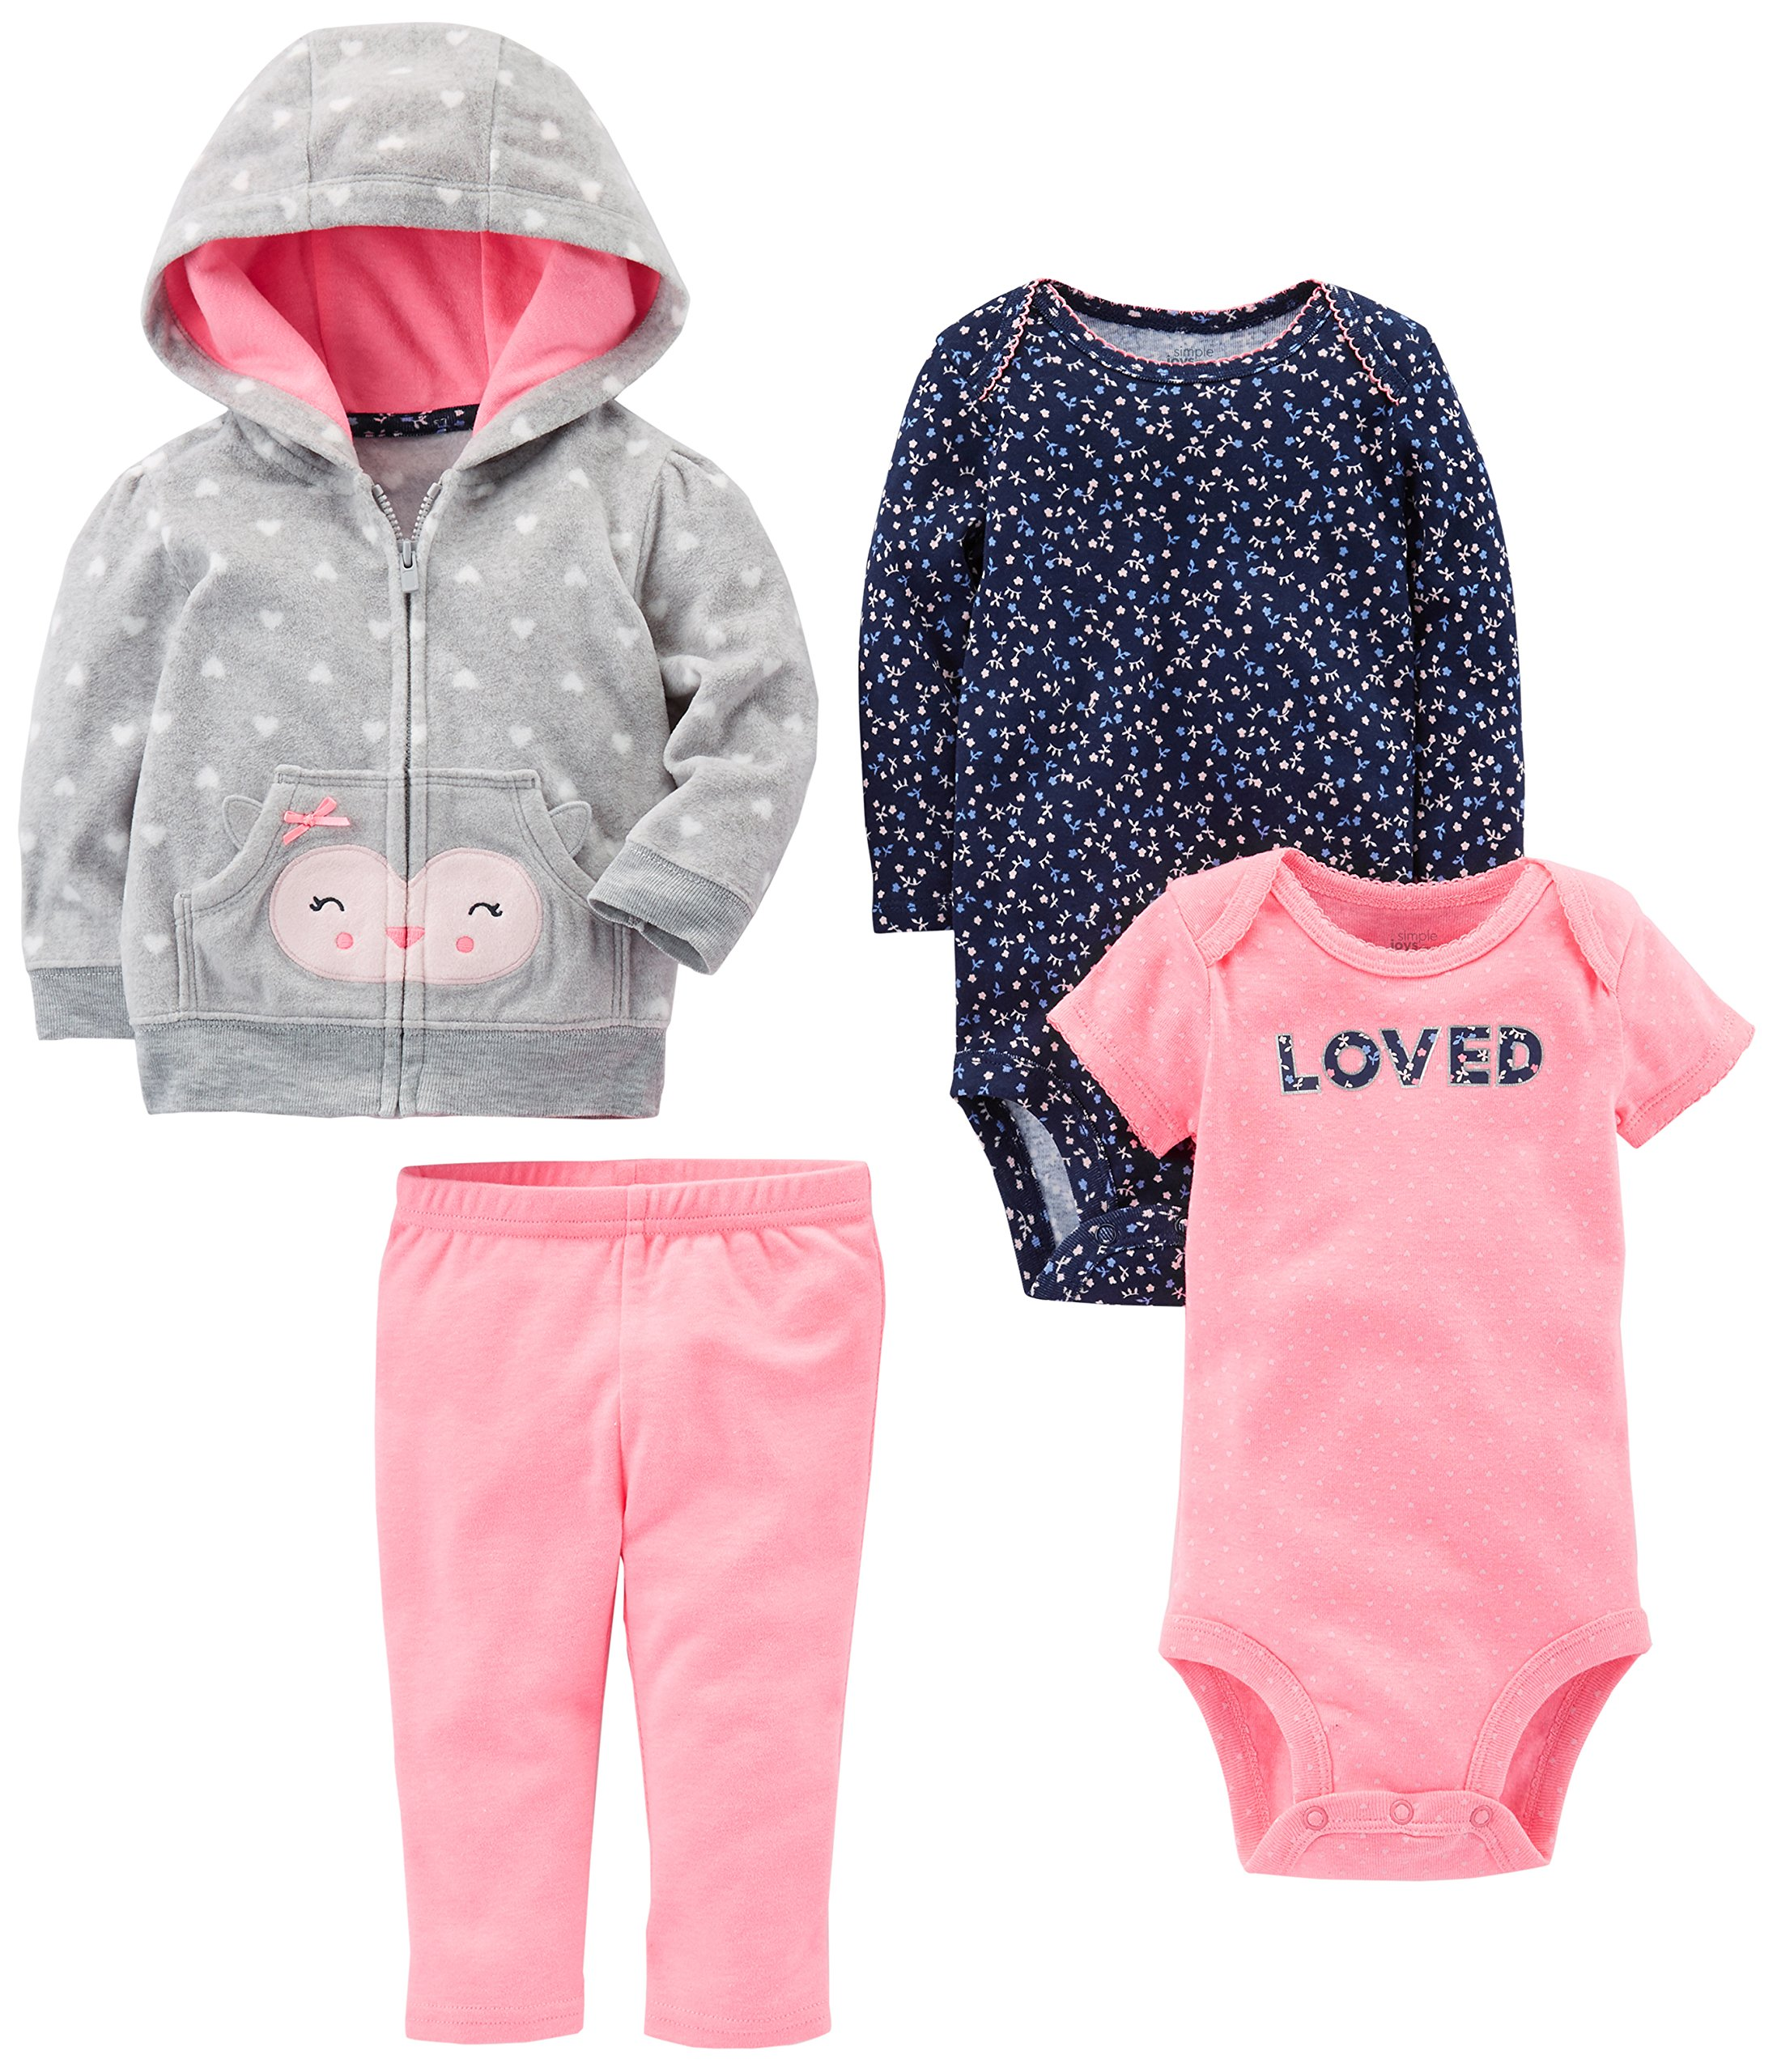 604597d53 Simple Joys by Carter's Baby Girls 4-Piece Little Jacket Set product image